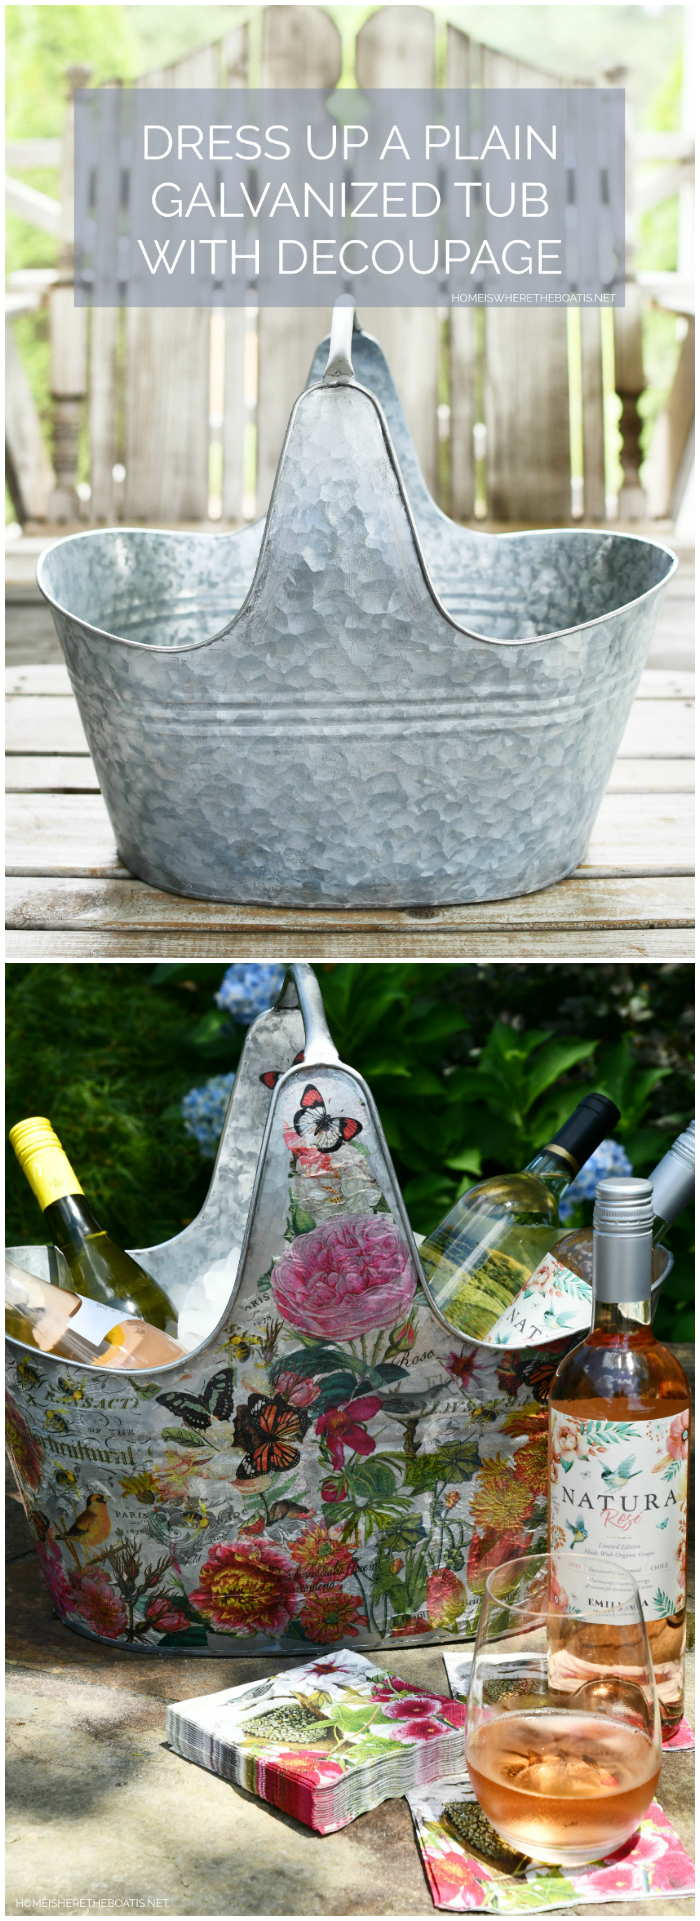 DIY Decoupage galvanized beverage tub | ©homeiswheretheboatis.net #DIY #craft